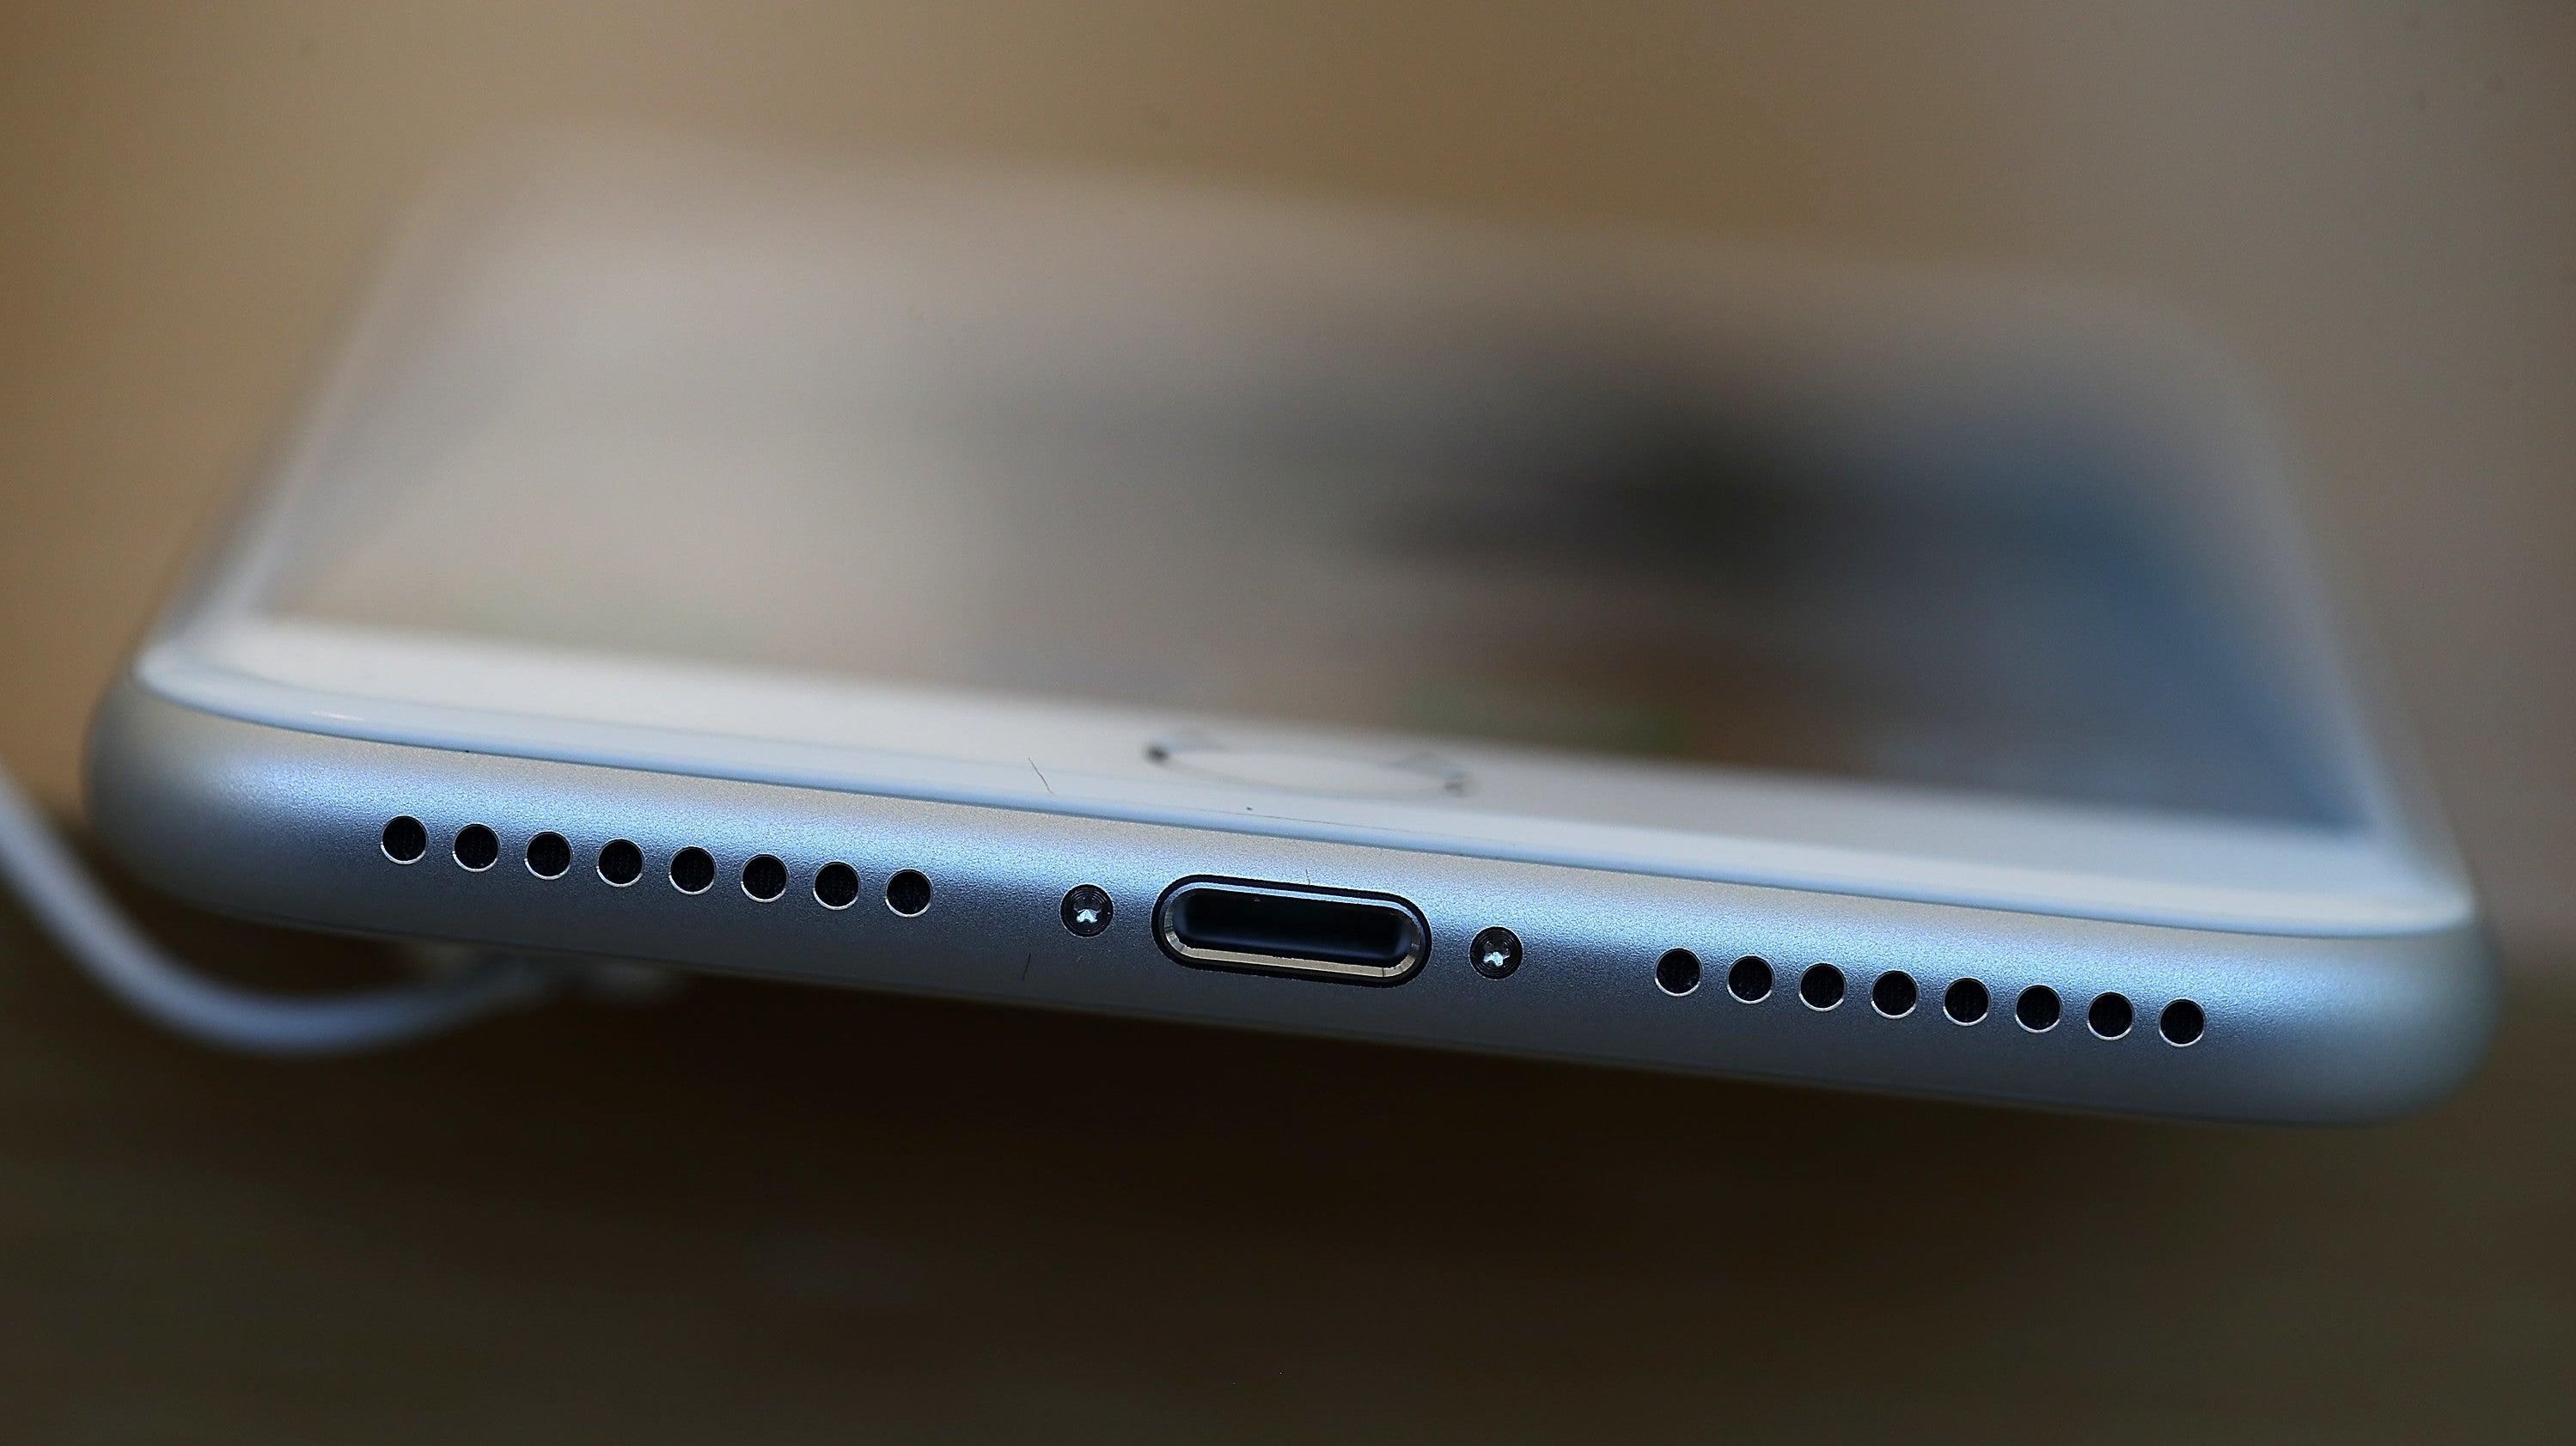 Fake Lightning Cables That Can Hijack Connected Devices Are Heading For Mass Production